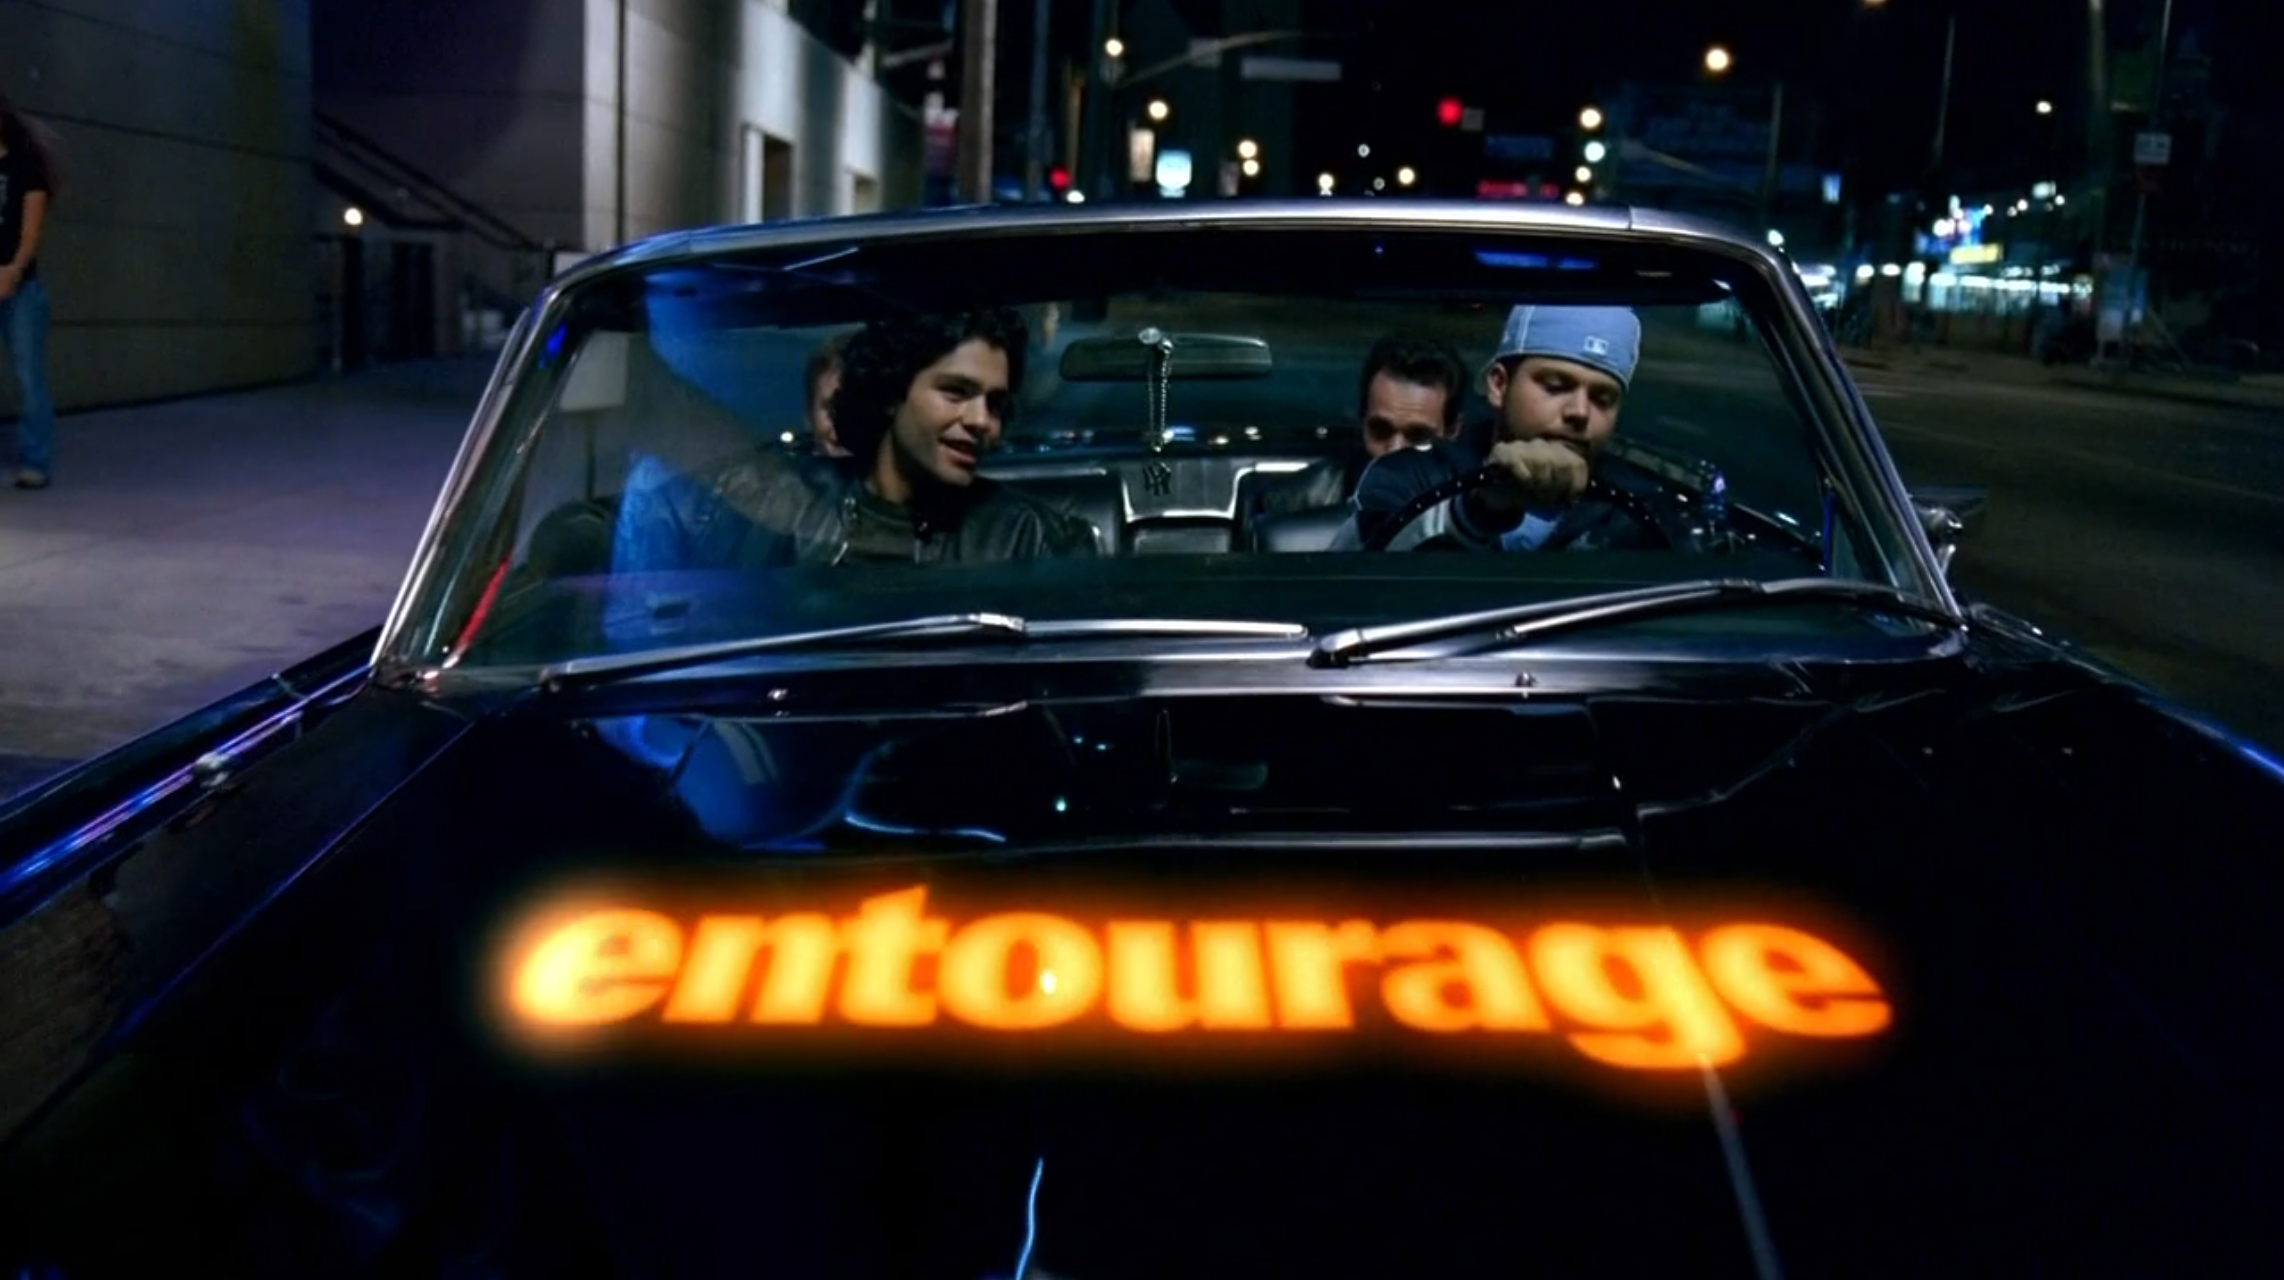 ENTOURAGE - Seasons 3-6